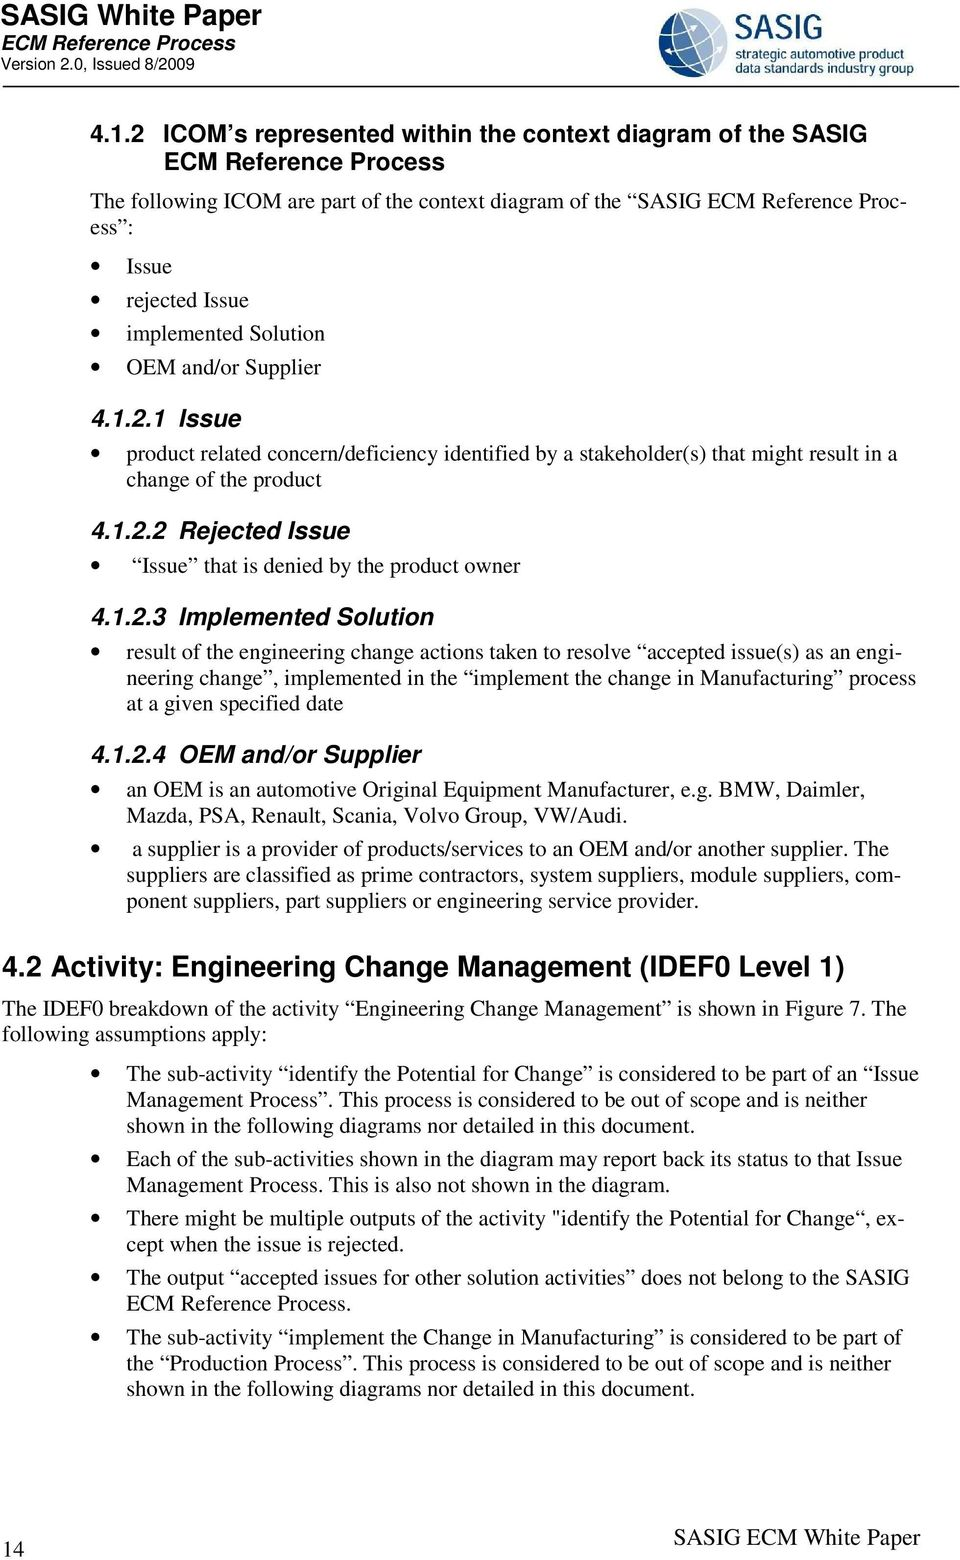 White Paper  Engineering Change Management Reference Process